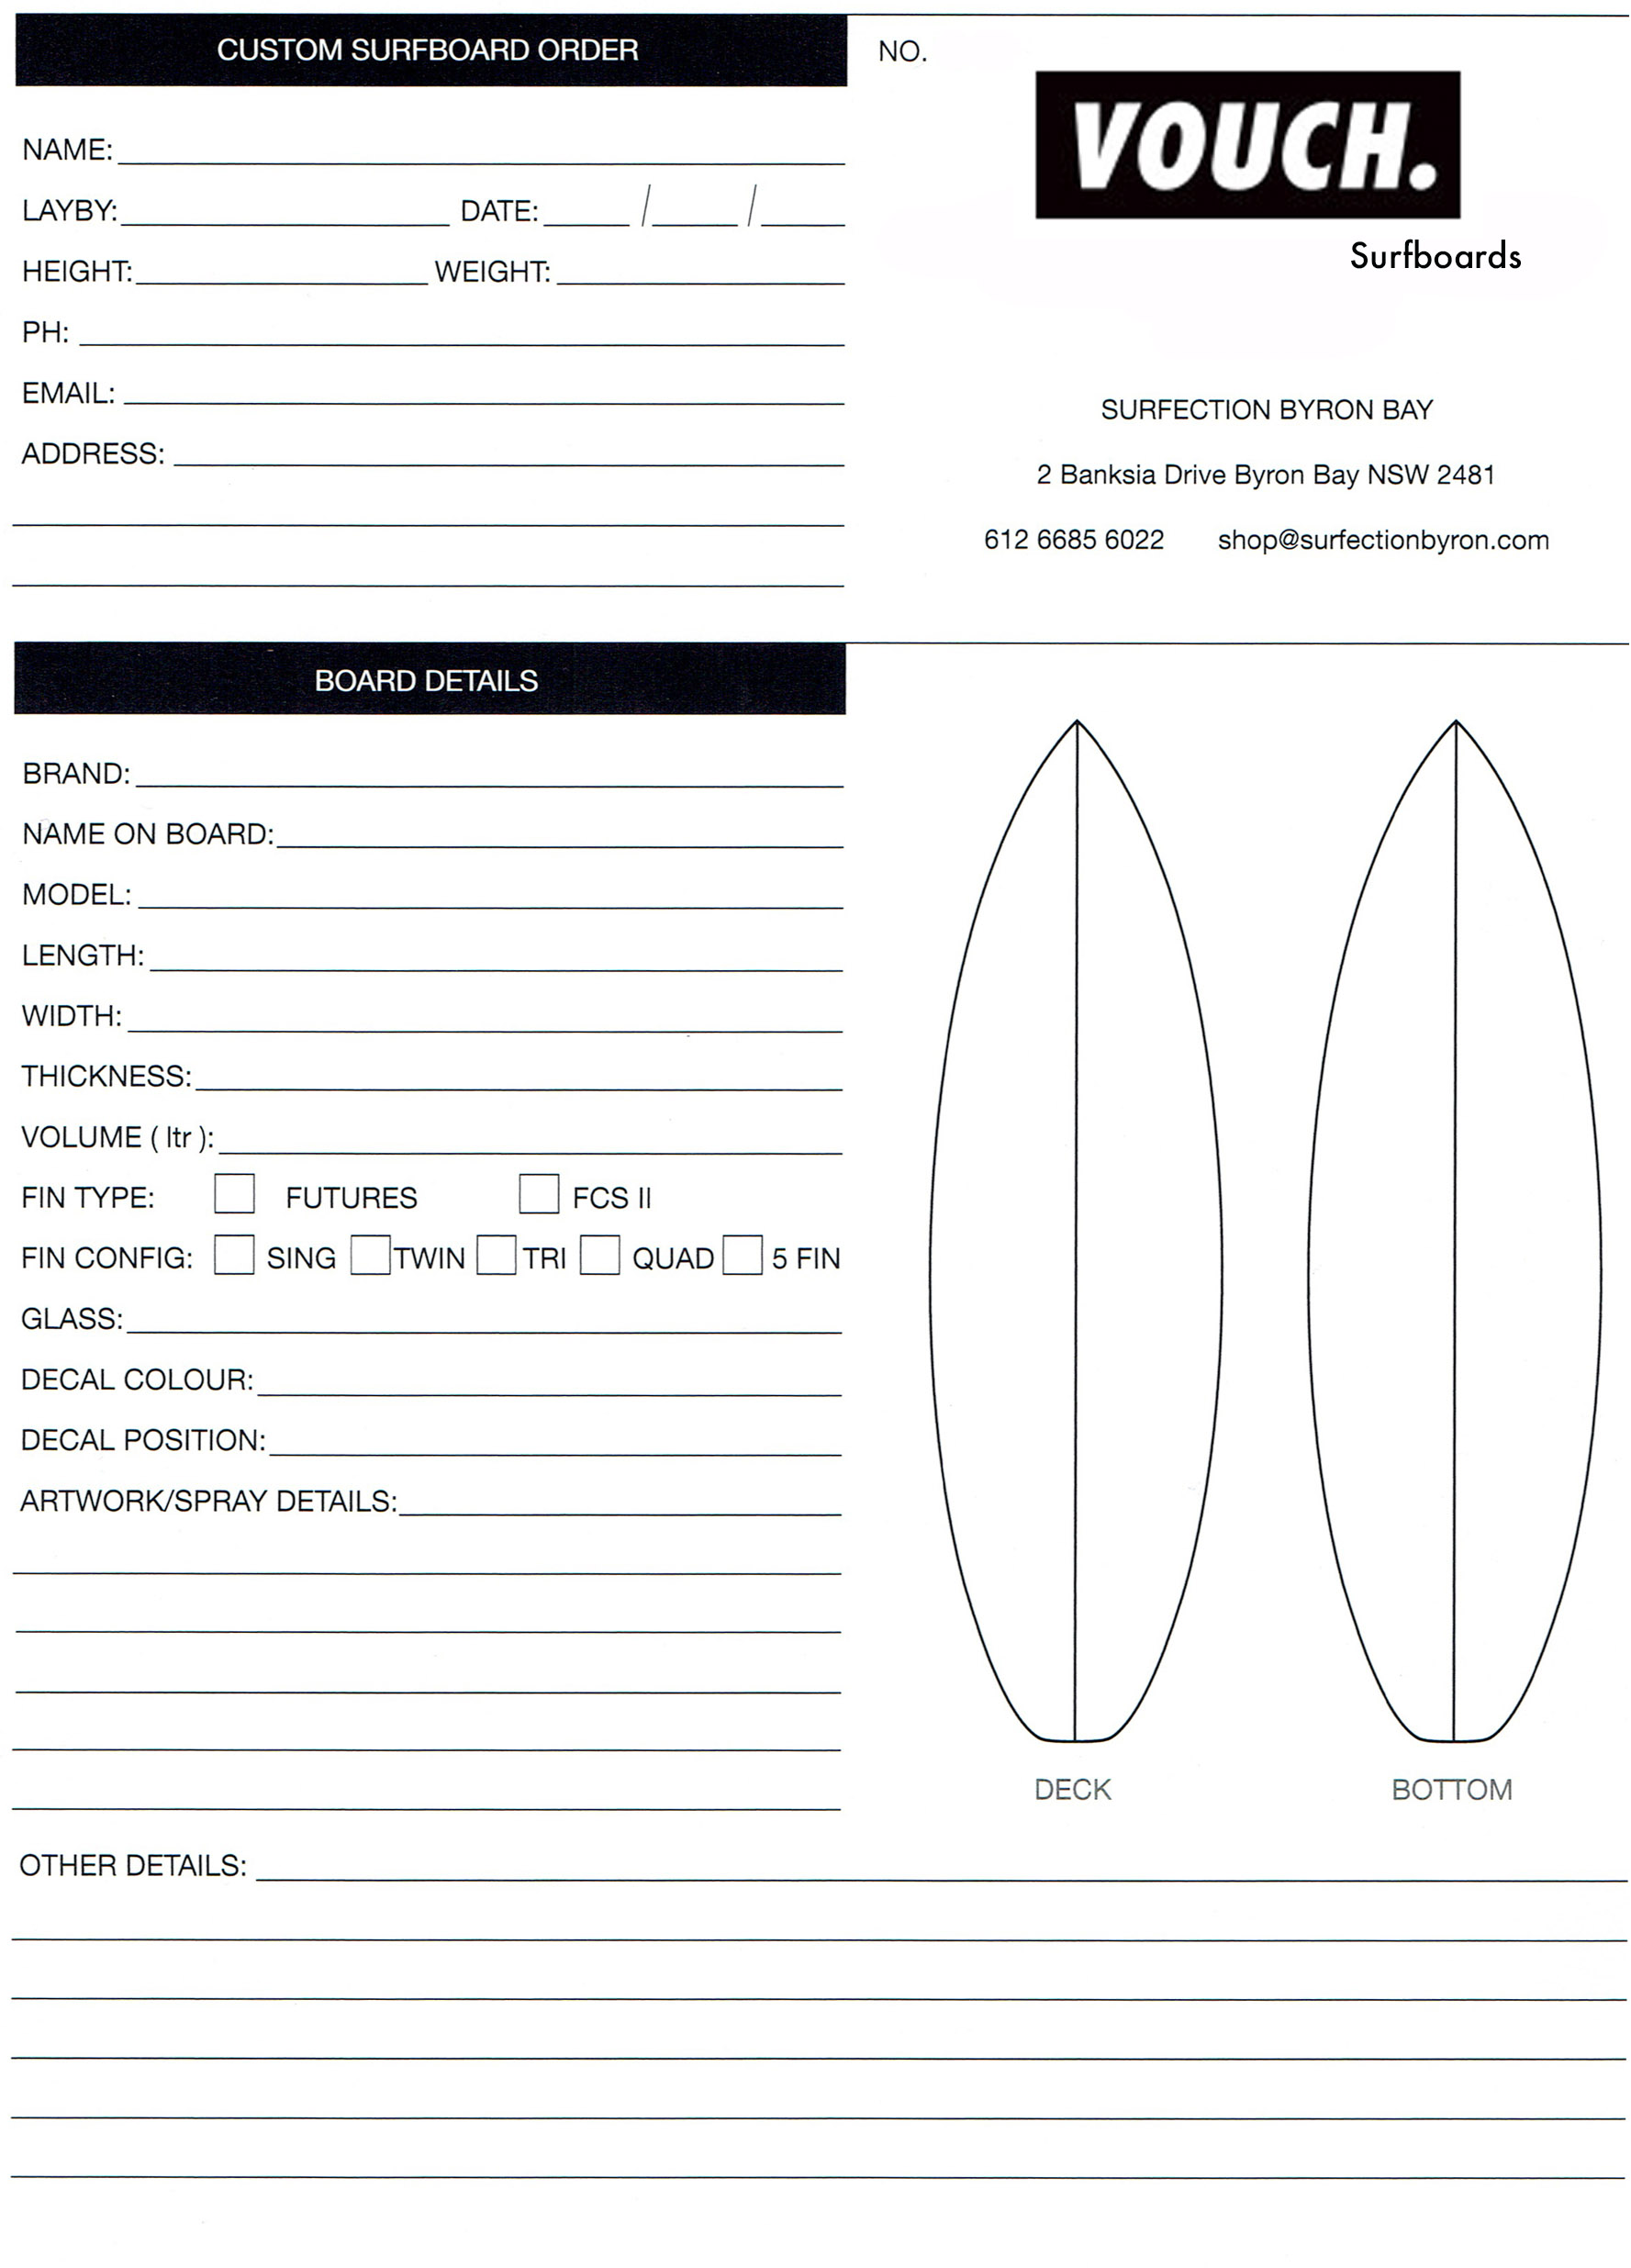 Fill out a custom order form - to get a quote on your own VOUCH Surfboard